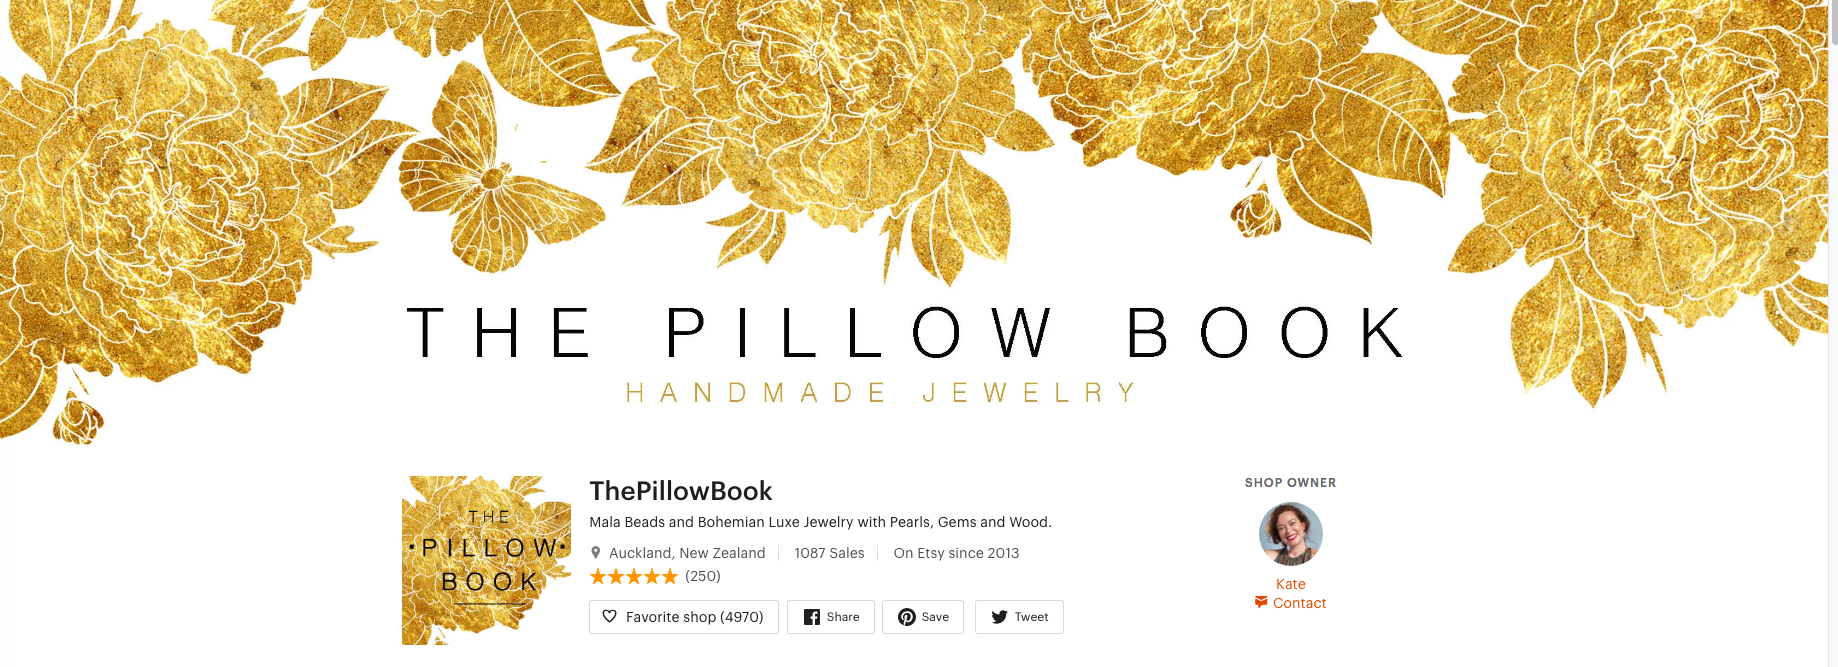 the pillow book- asian style jewelry shop on etsy